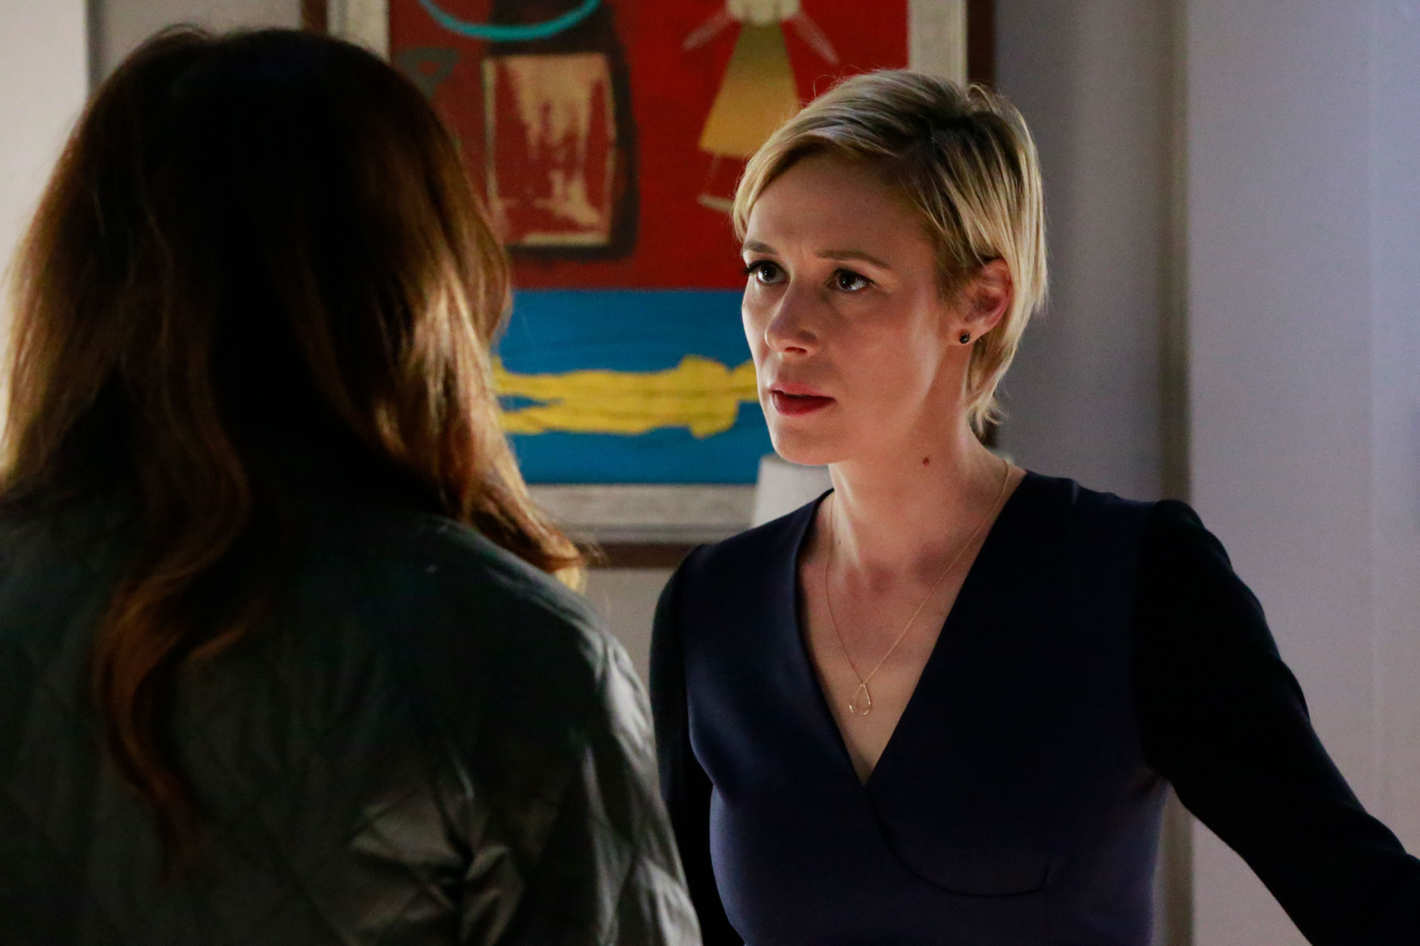 How to get away with murder season 3 episode 14 ccuart Gallery